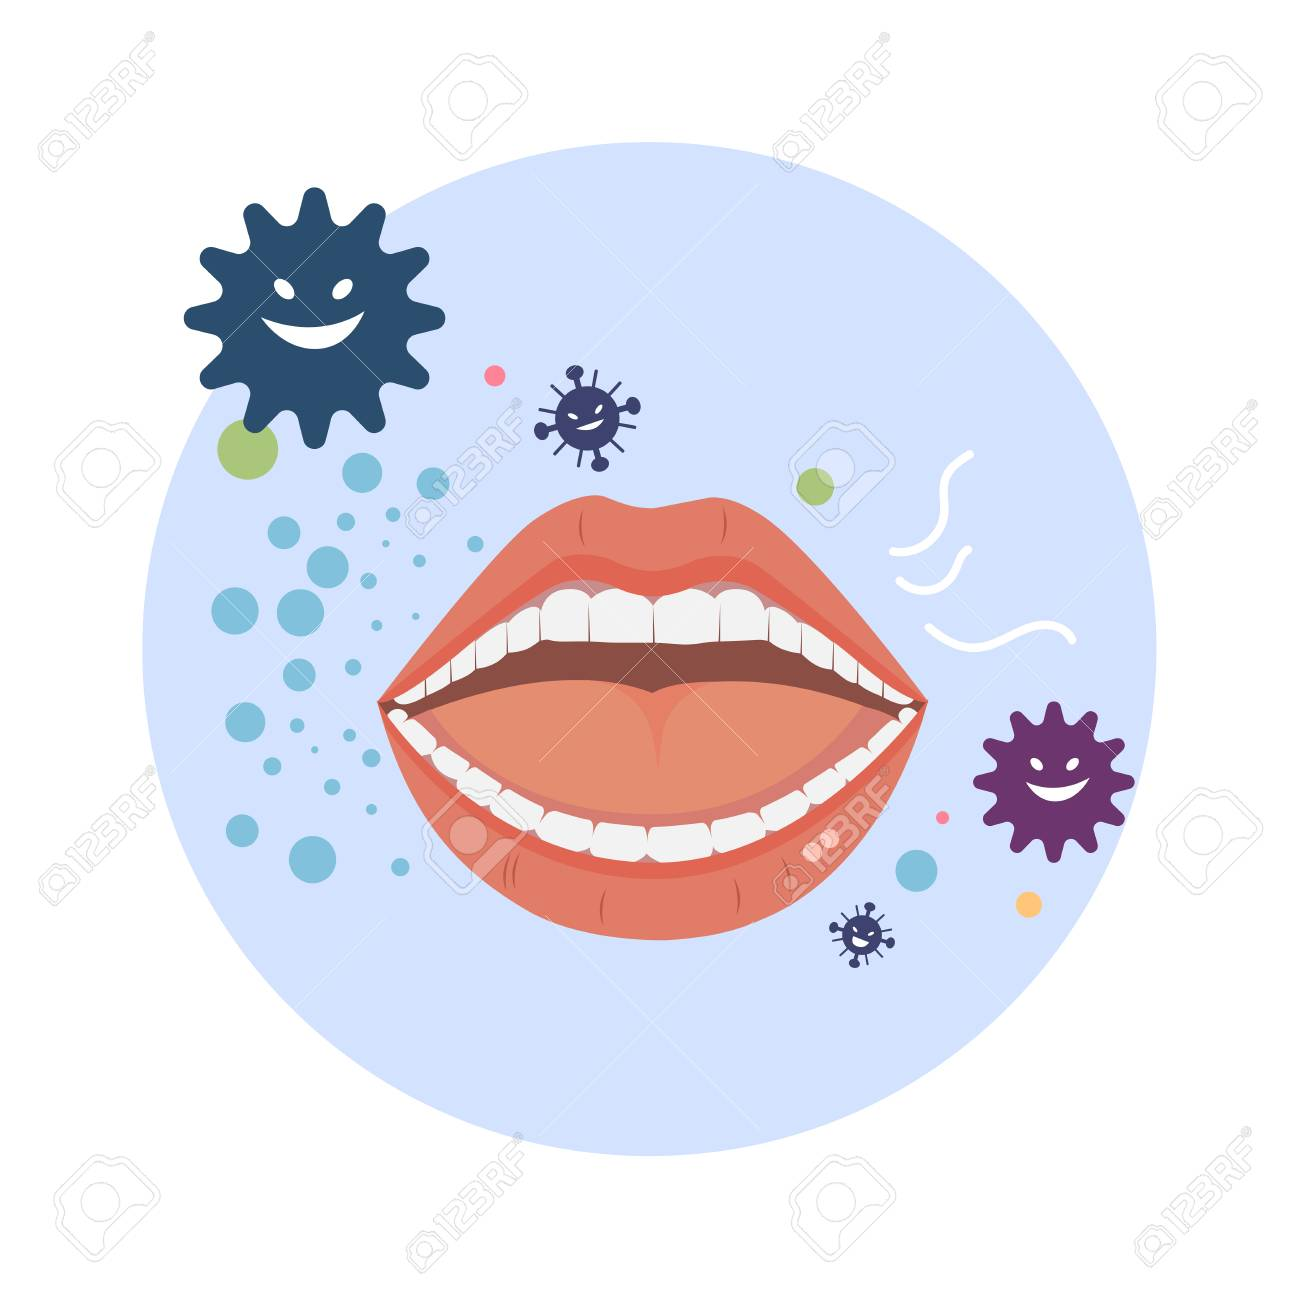 Bad breath vector with bacteria on white background. - 125506374